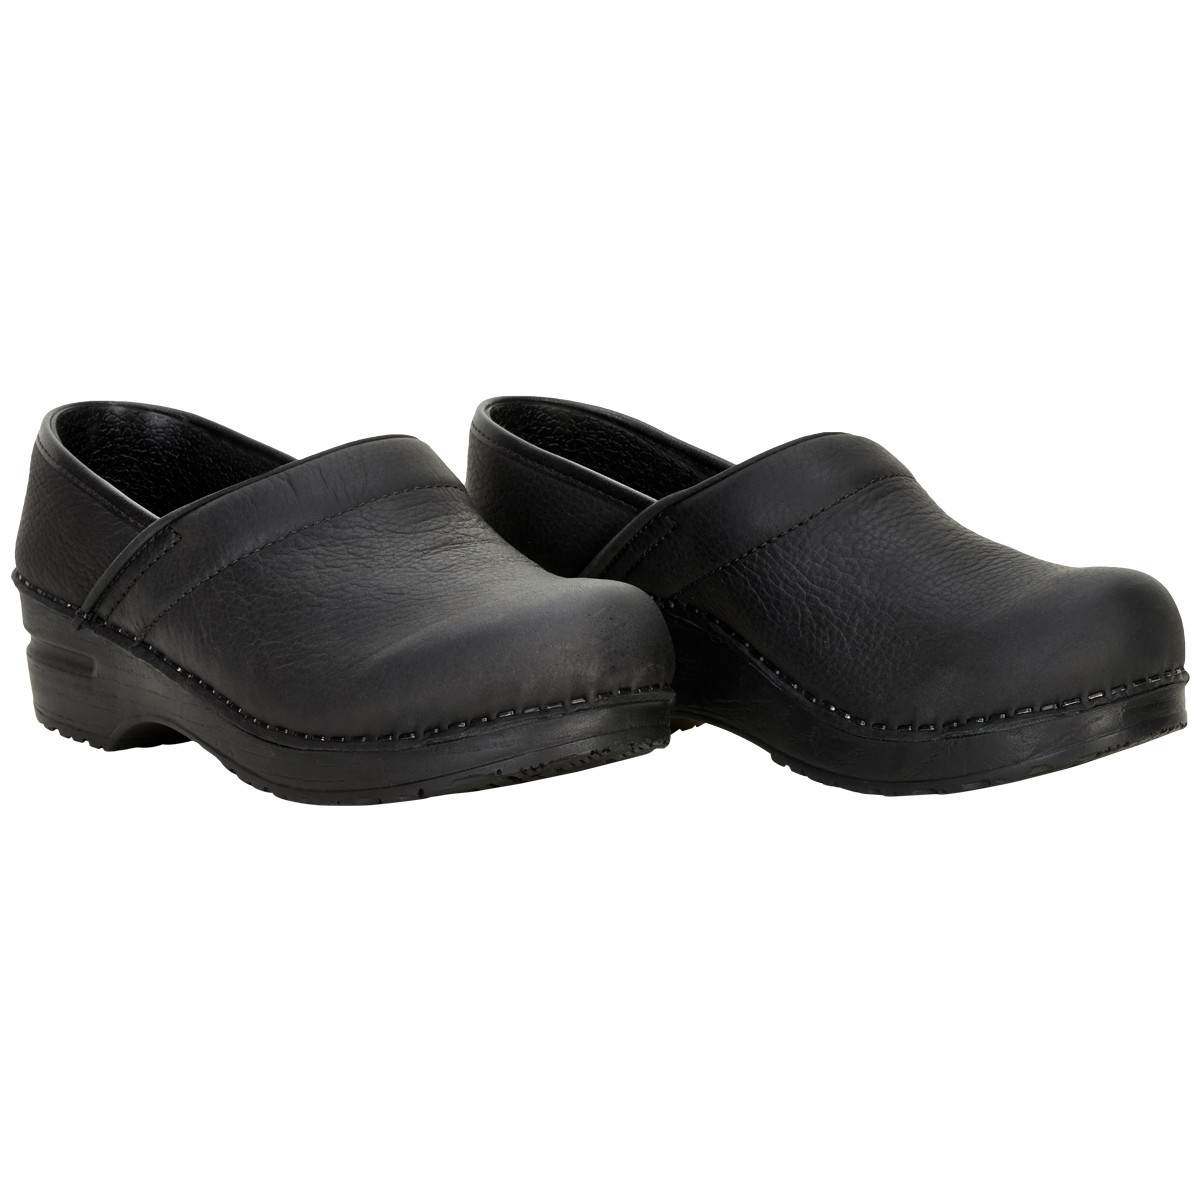 Sanita Original Lissi Clogs 450216 2